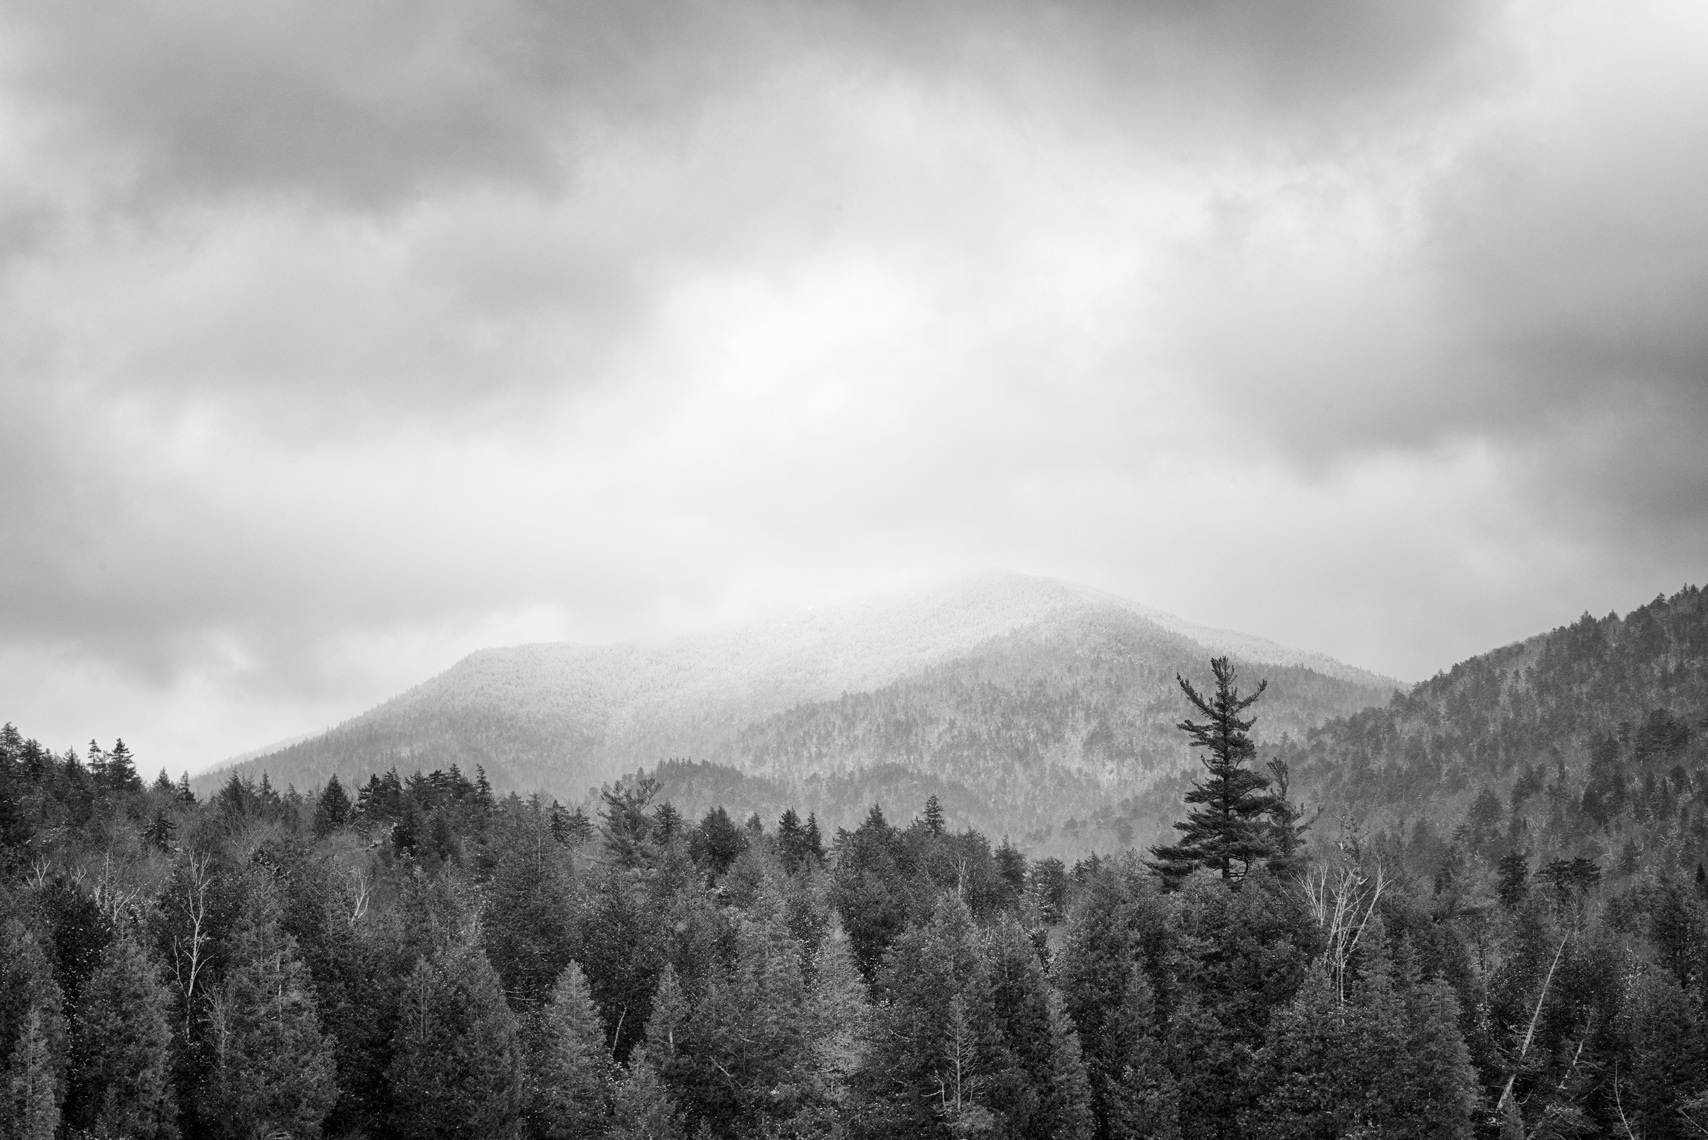 Winter Mountain, Adirondacks, New York